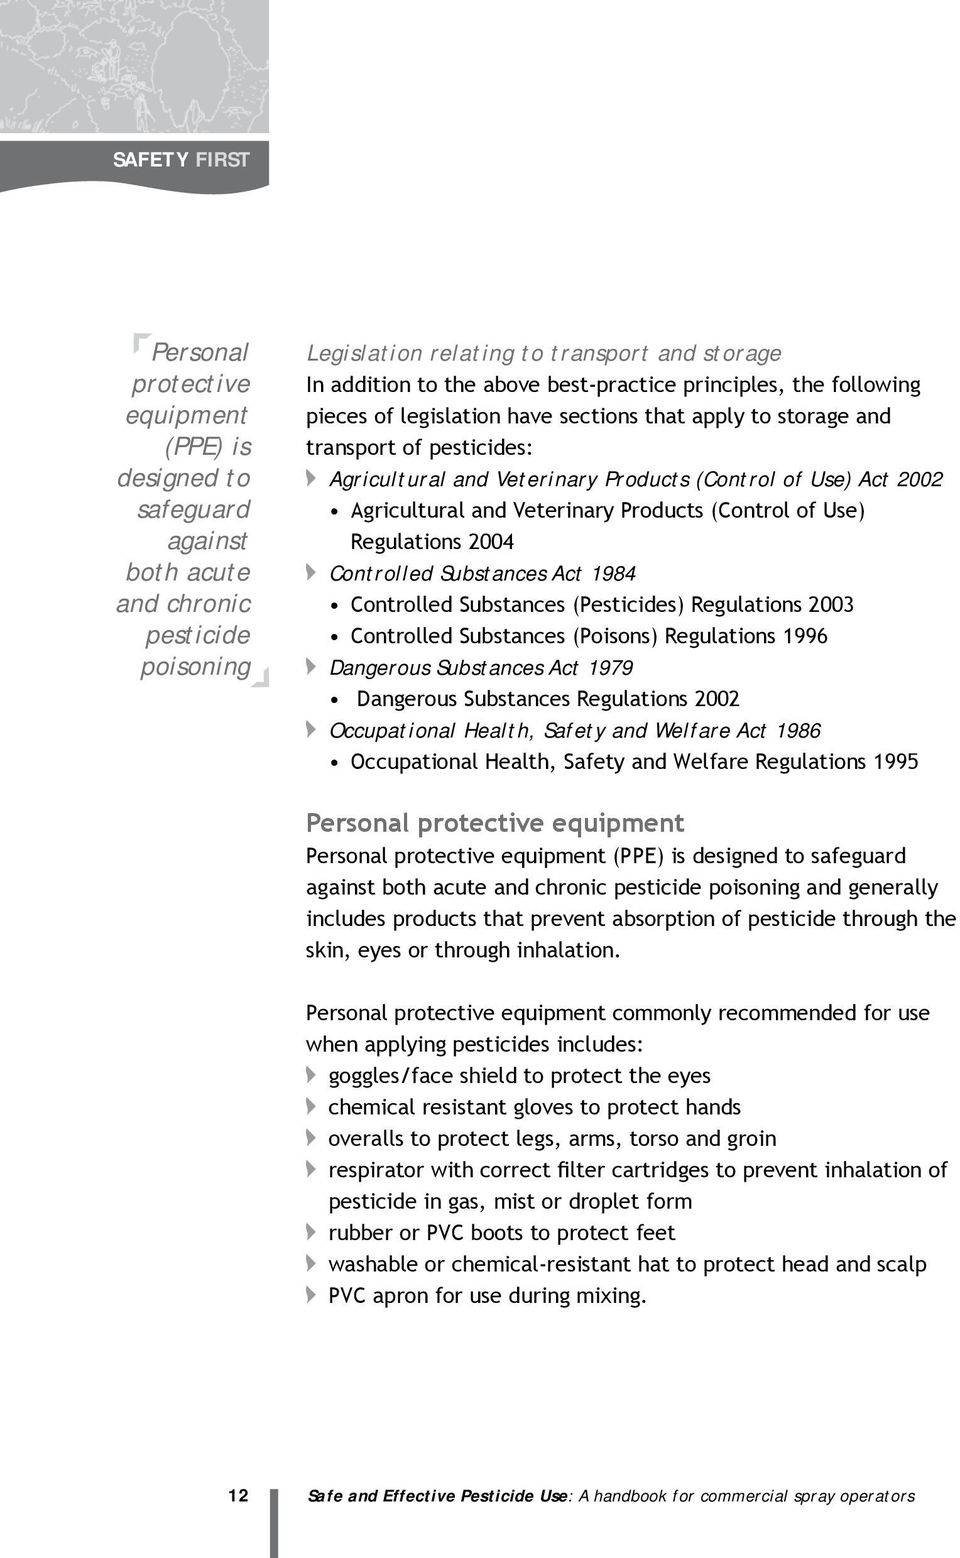 Agricultural and Veterinary Products (Control of Use) Regulations 2004 Controlled Substances Act 1984 Controlled Substances (Pesticides) Regulations 2003 Controlled Substances (Poisons) Regulations